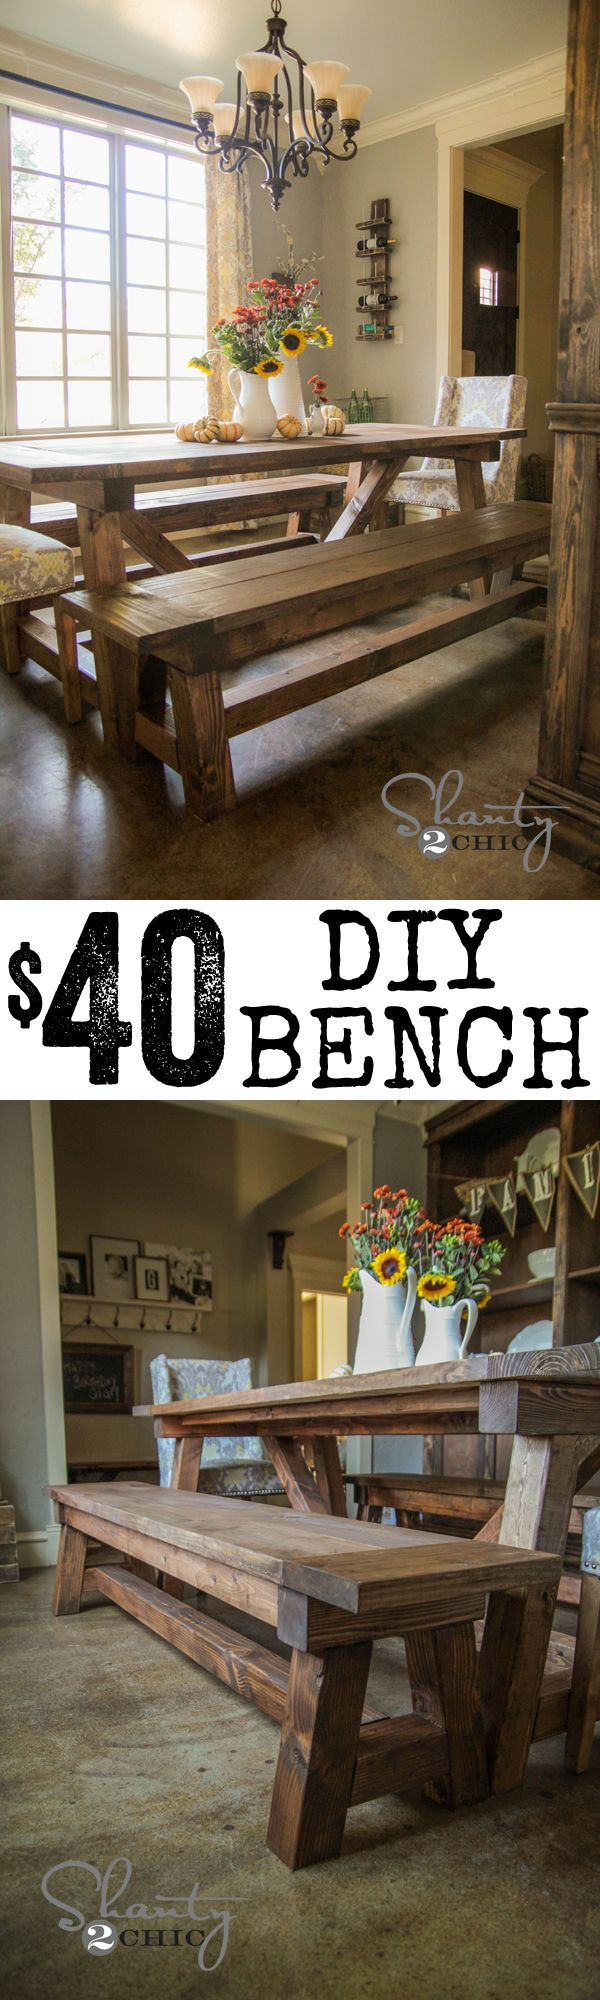 Info's : DIY Bench and Dining Table!  Beautiful and cheap... Woohoo!